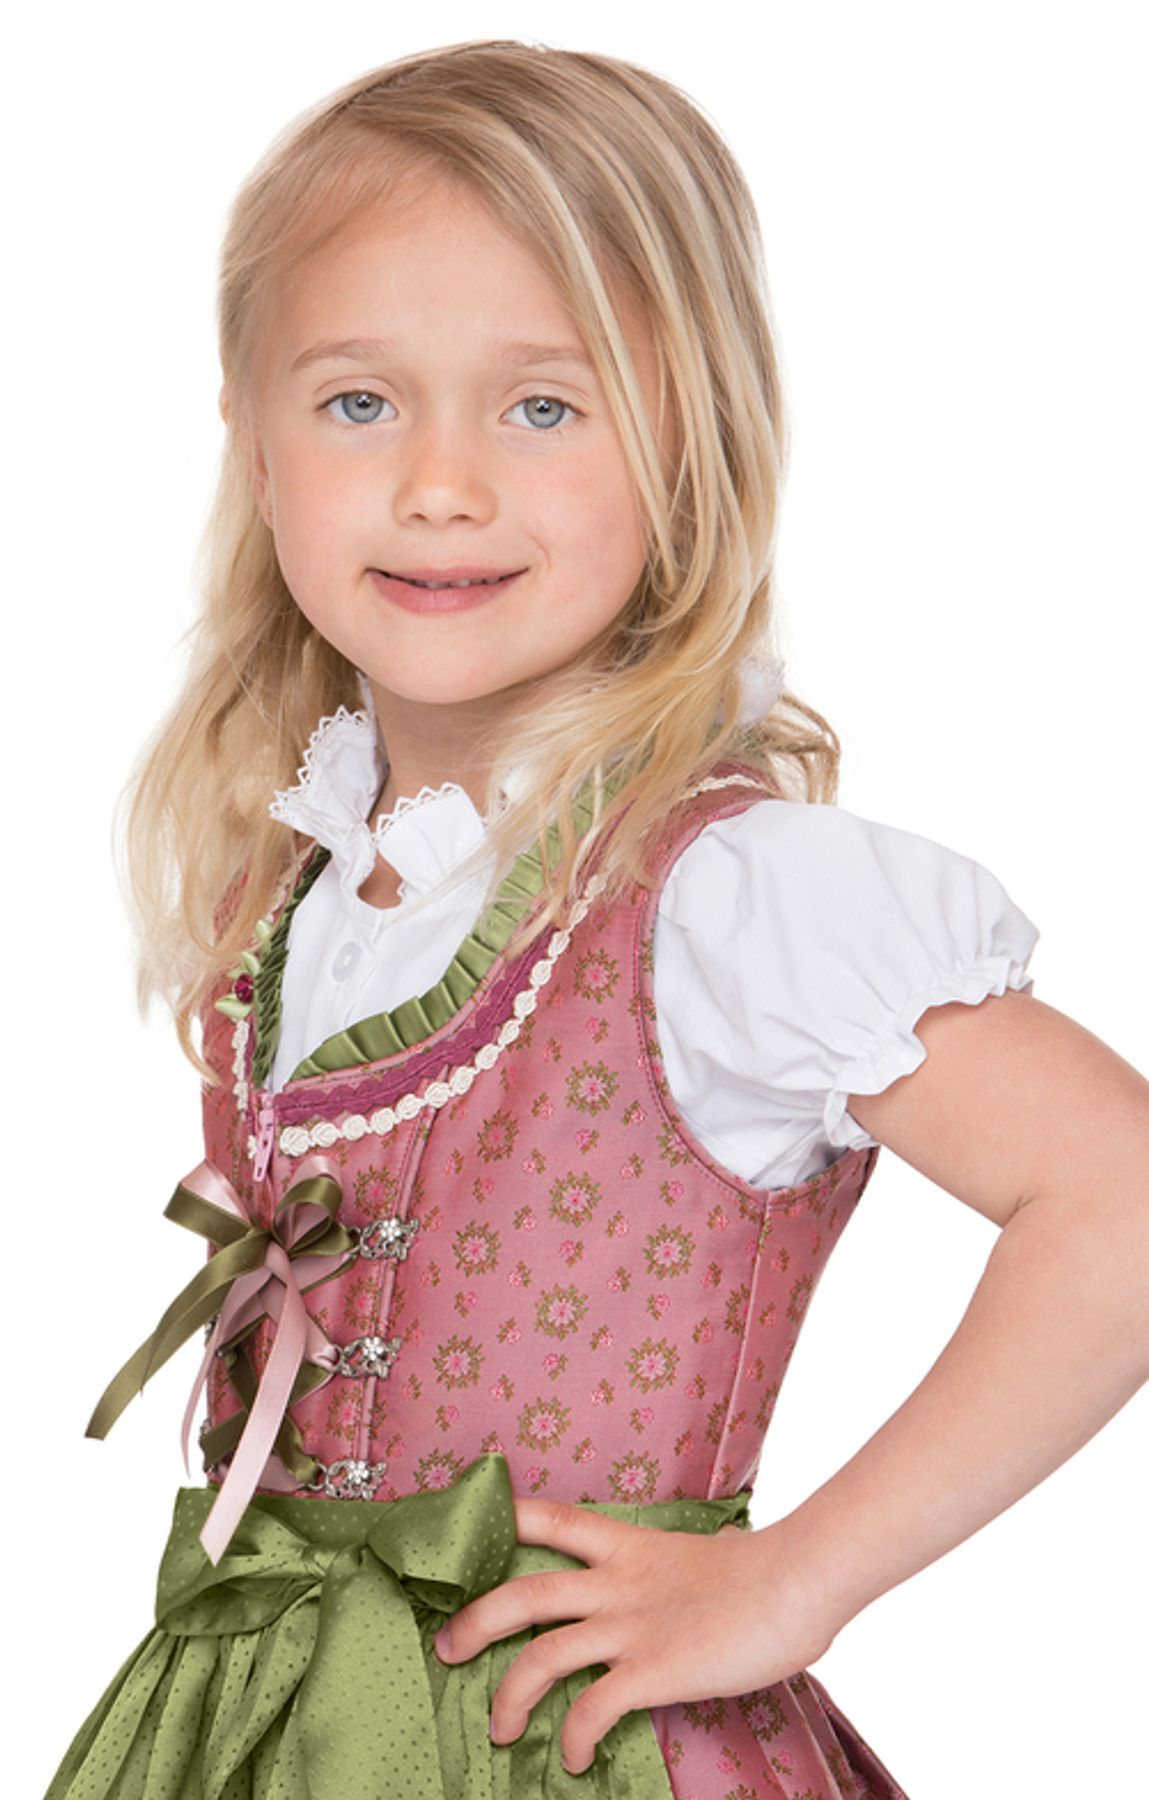 Stockerpoint - Kinder Trachten Dirndl Suki in Rose, Gr. 122-152 – Bild 3